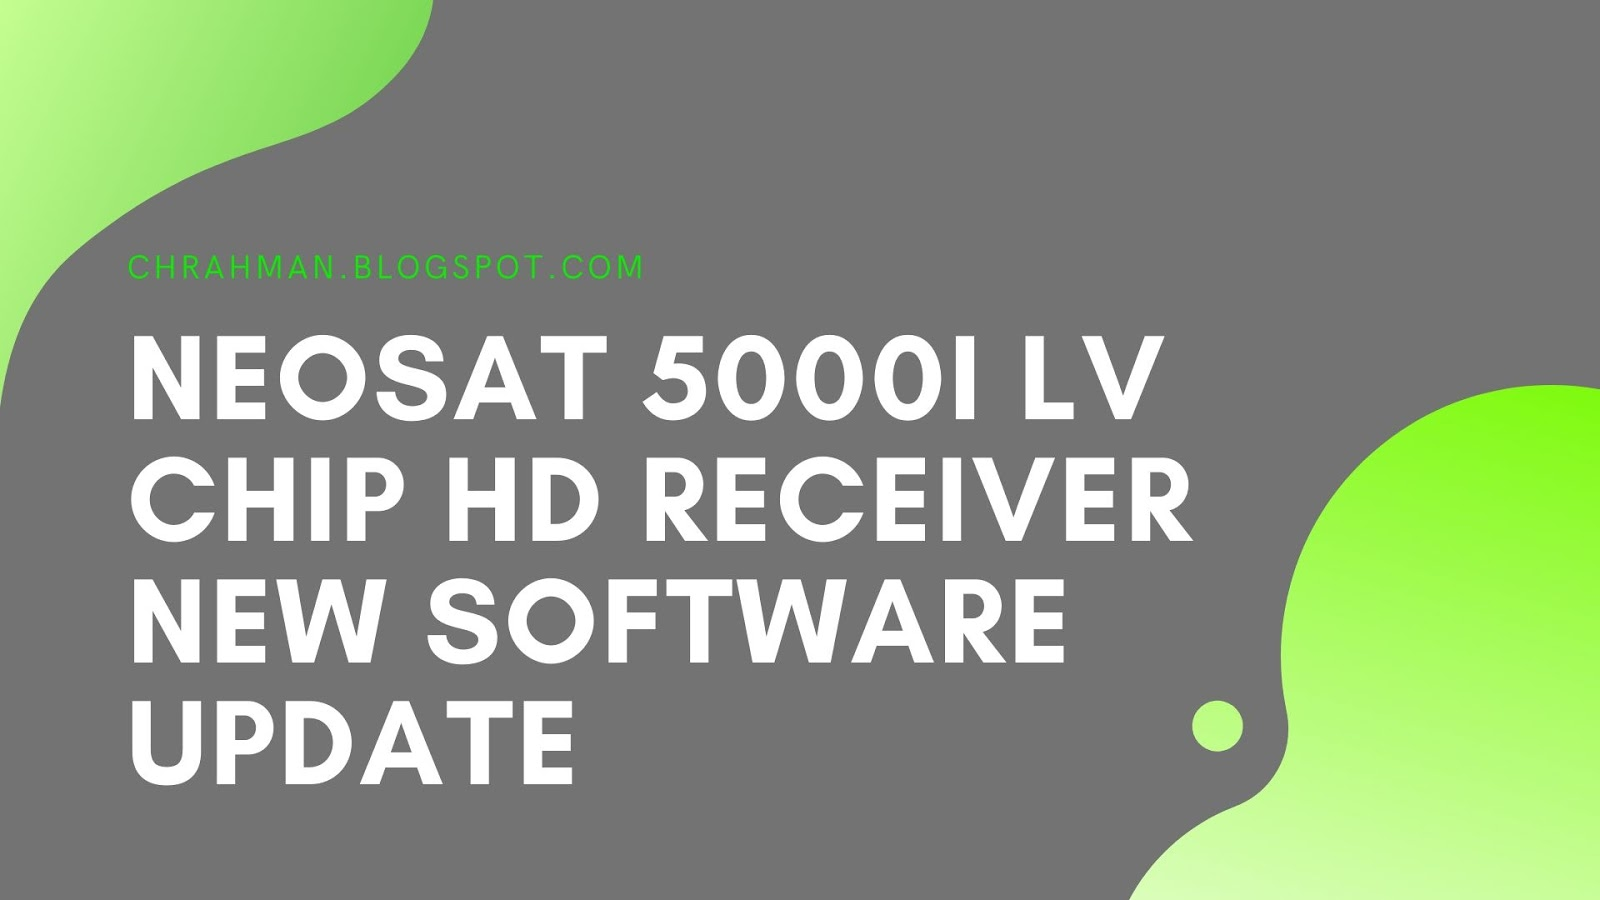 NEOSAT 5000i LV CHIP HD RECEIVER NEW SOFTWARE UPDATE